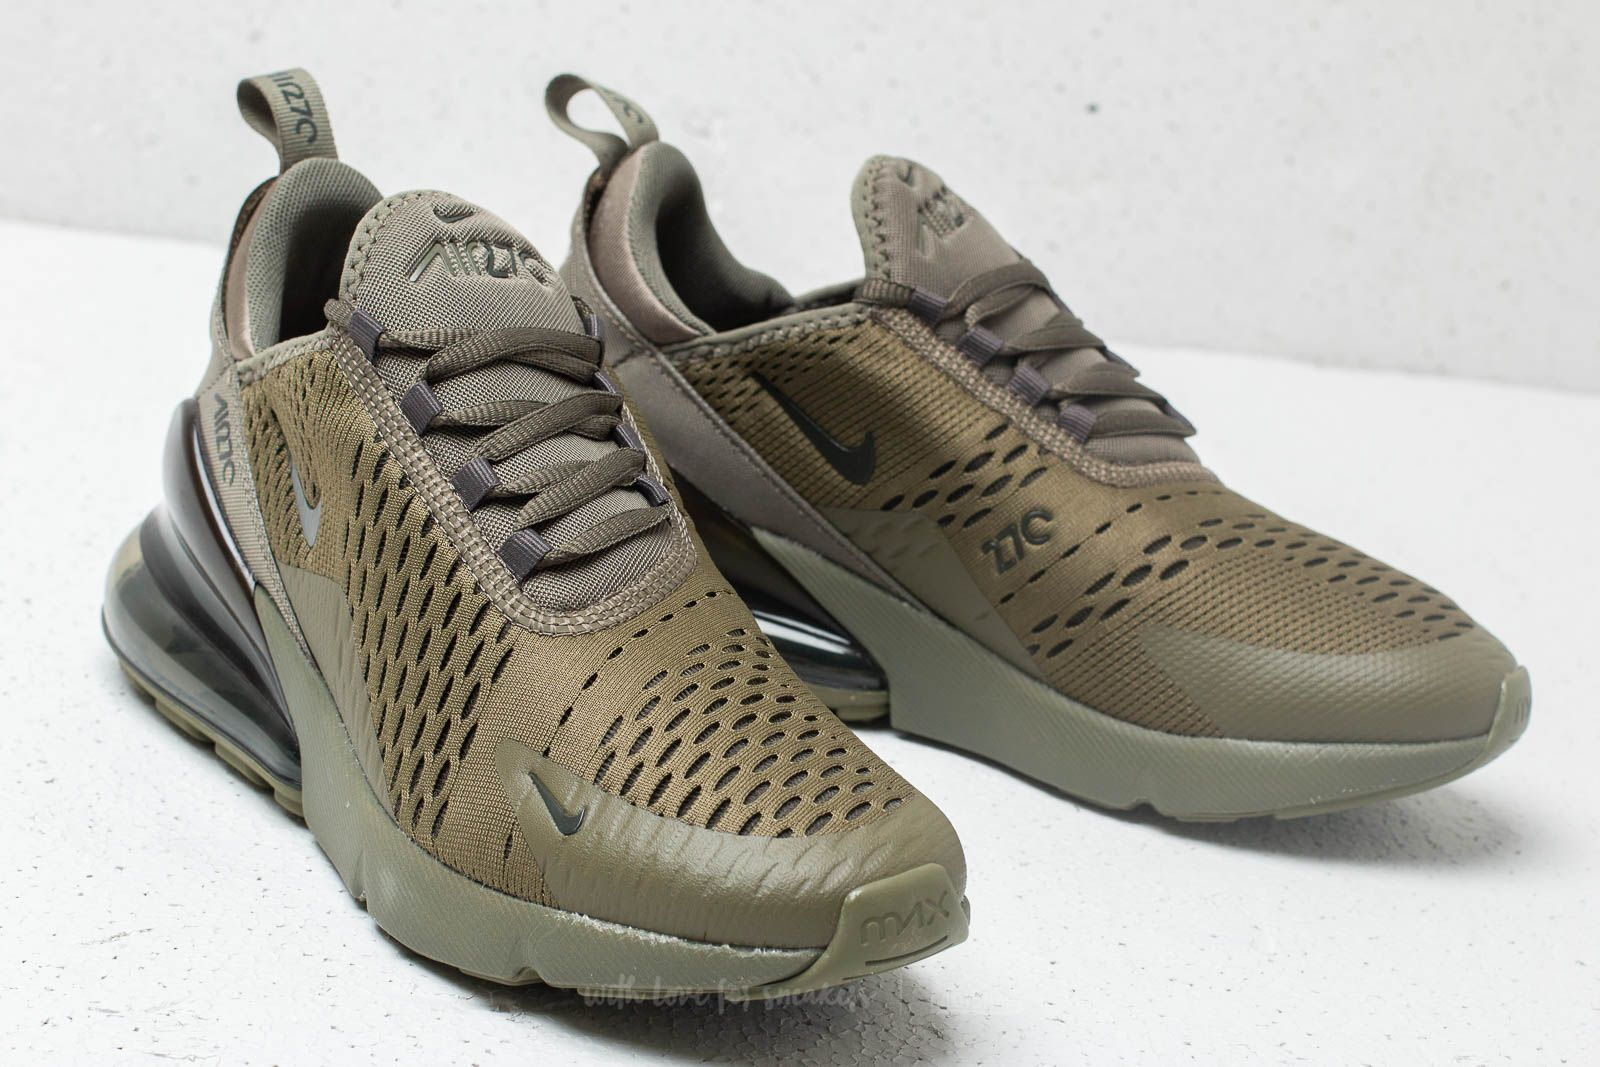 newest 2cac3 40b97 ... netherlands nike air max 270 gs medium olive newsprint at a great price  121 9711a 8f068